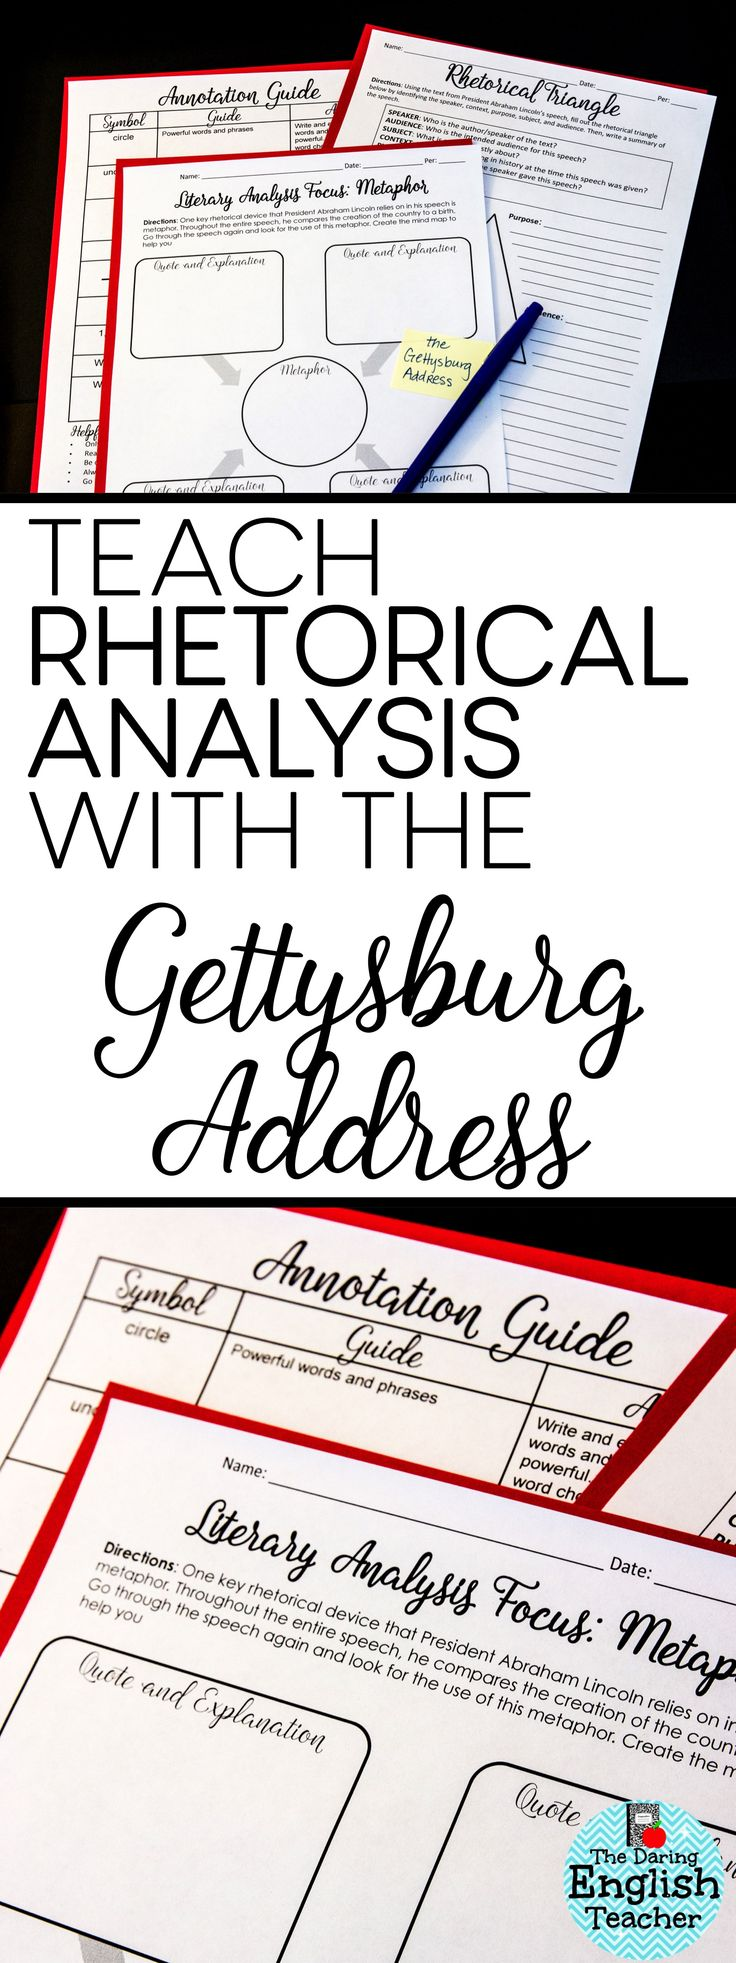 an introduction to the analysis of the gettysburg address The gettysburg address is a speech by us president abraham lincoln that is one of the best-known speeches in american history  photo analysis 2-d and optical .